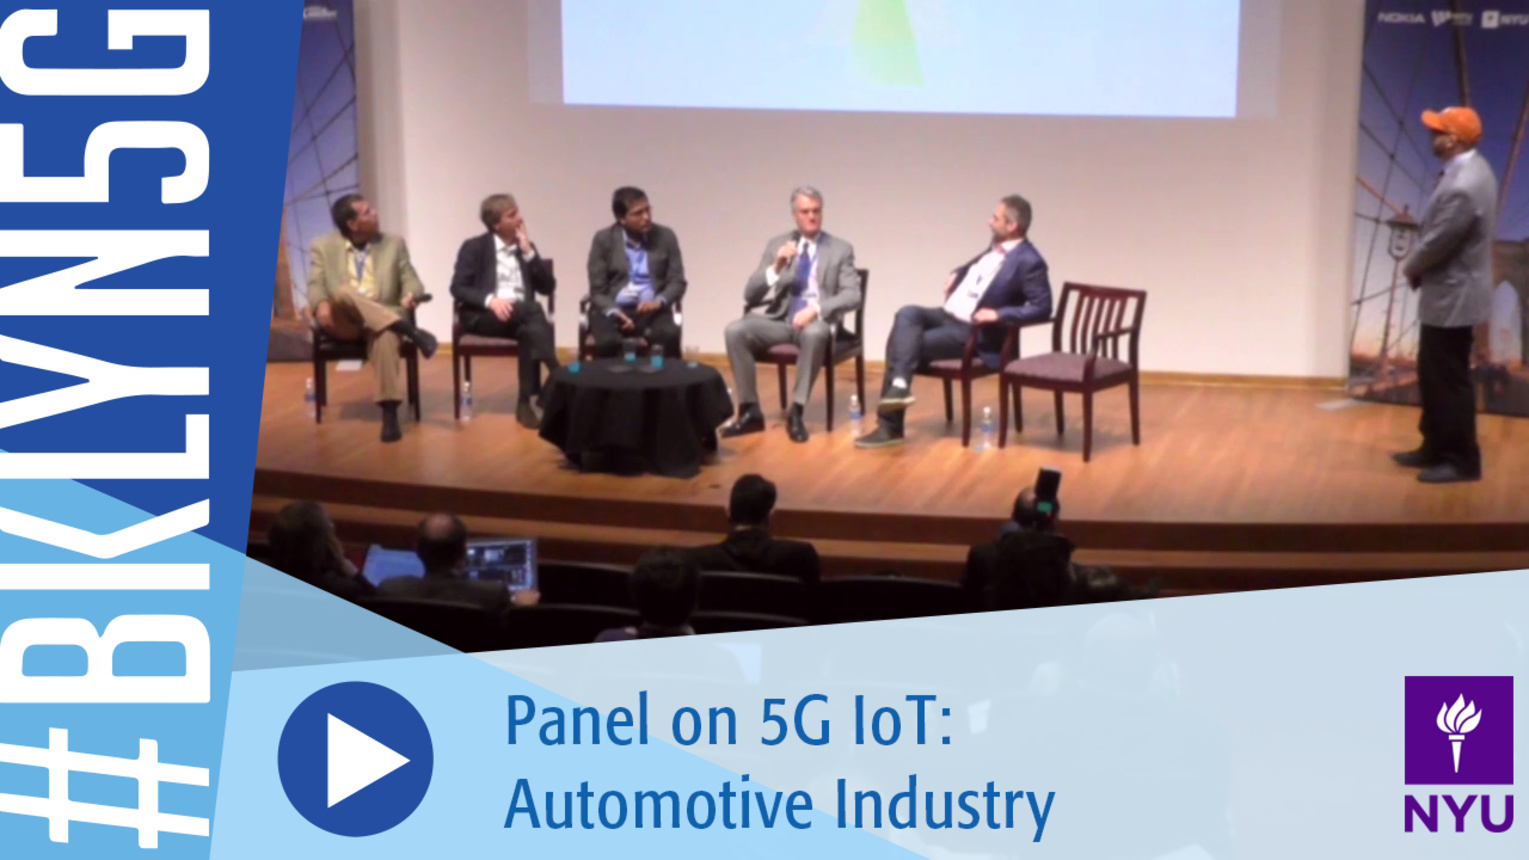 Brooklyn 5G 2016: 5G IoT: Automotive Industry